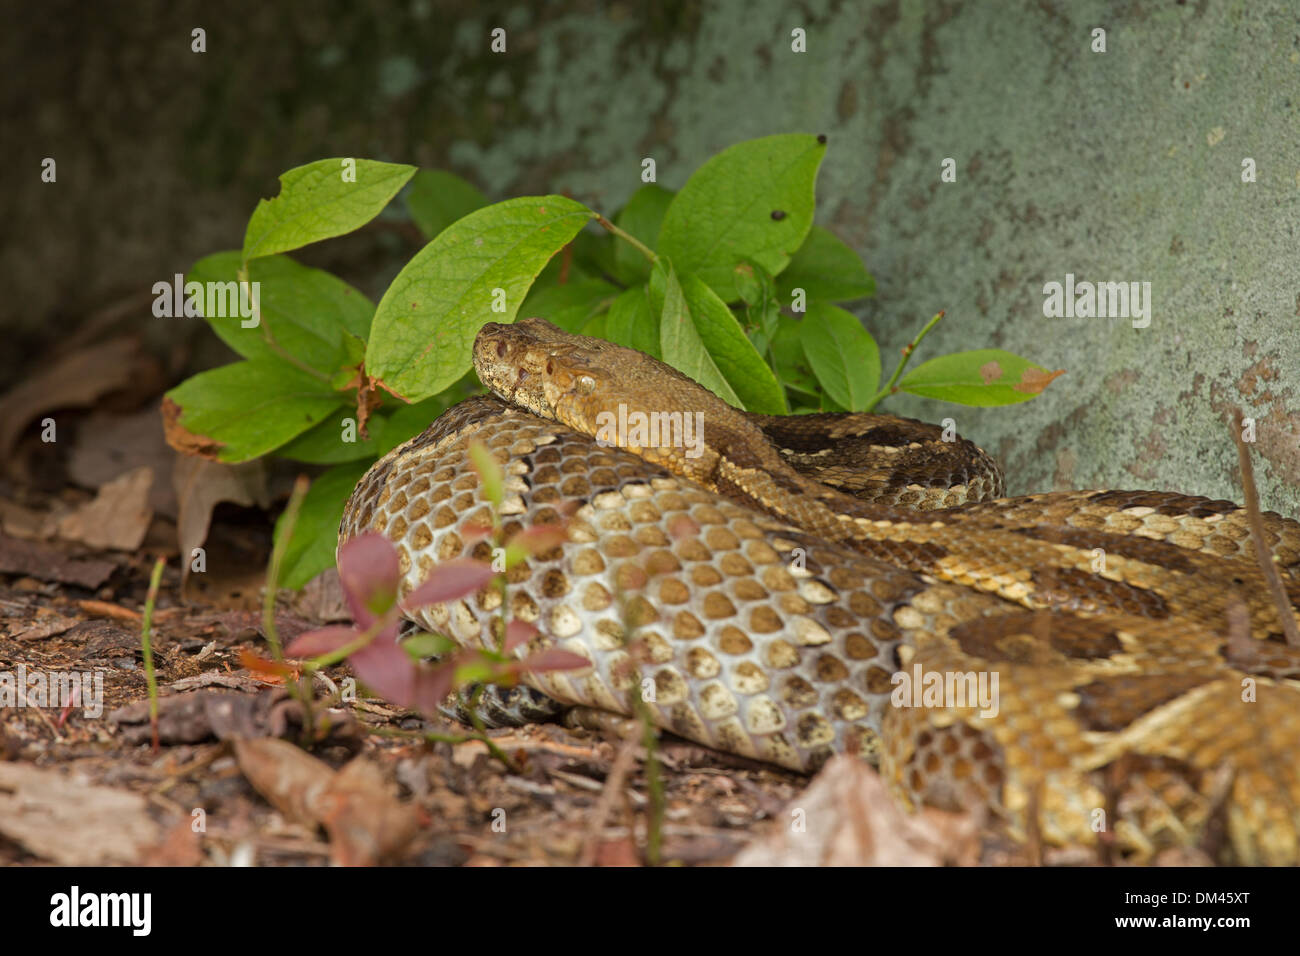 Timber Rattlesnake Crotalus horridus,  Pennsylvania, Gravid females basking, with deformed face two facial pits on one side - Stock Image